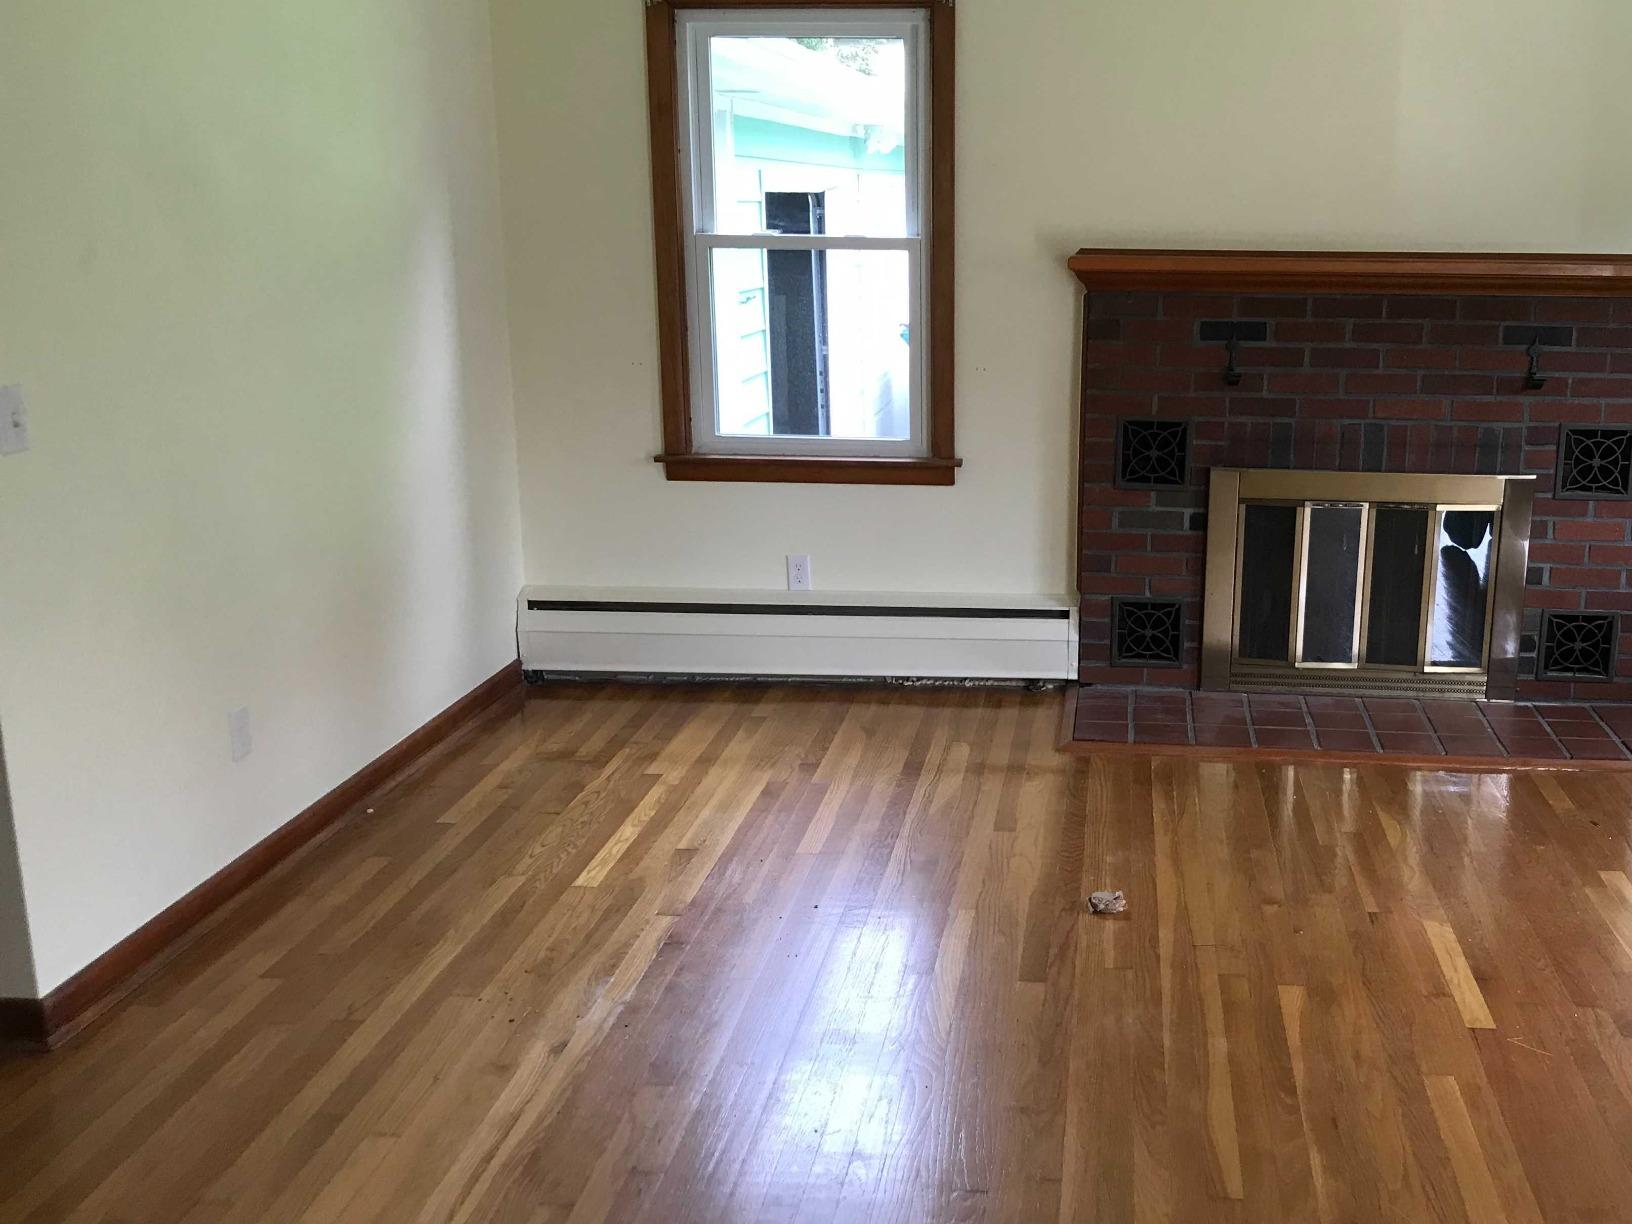 Living Room Junk Removal in Milford, CT - After Photo